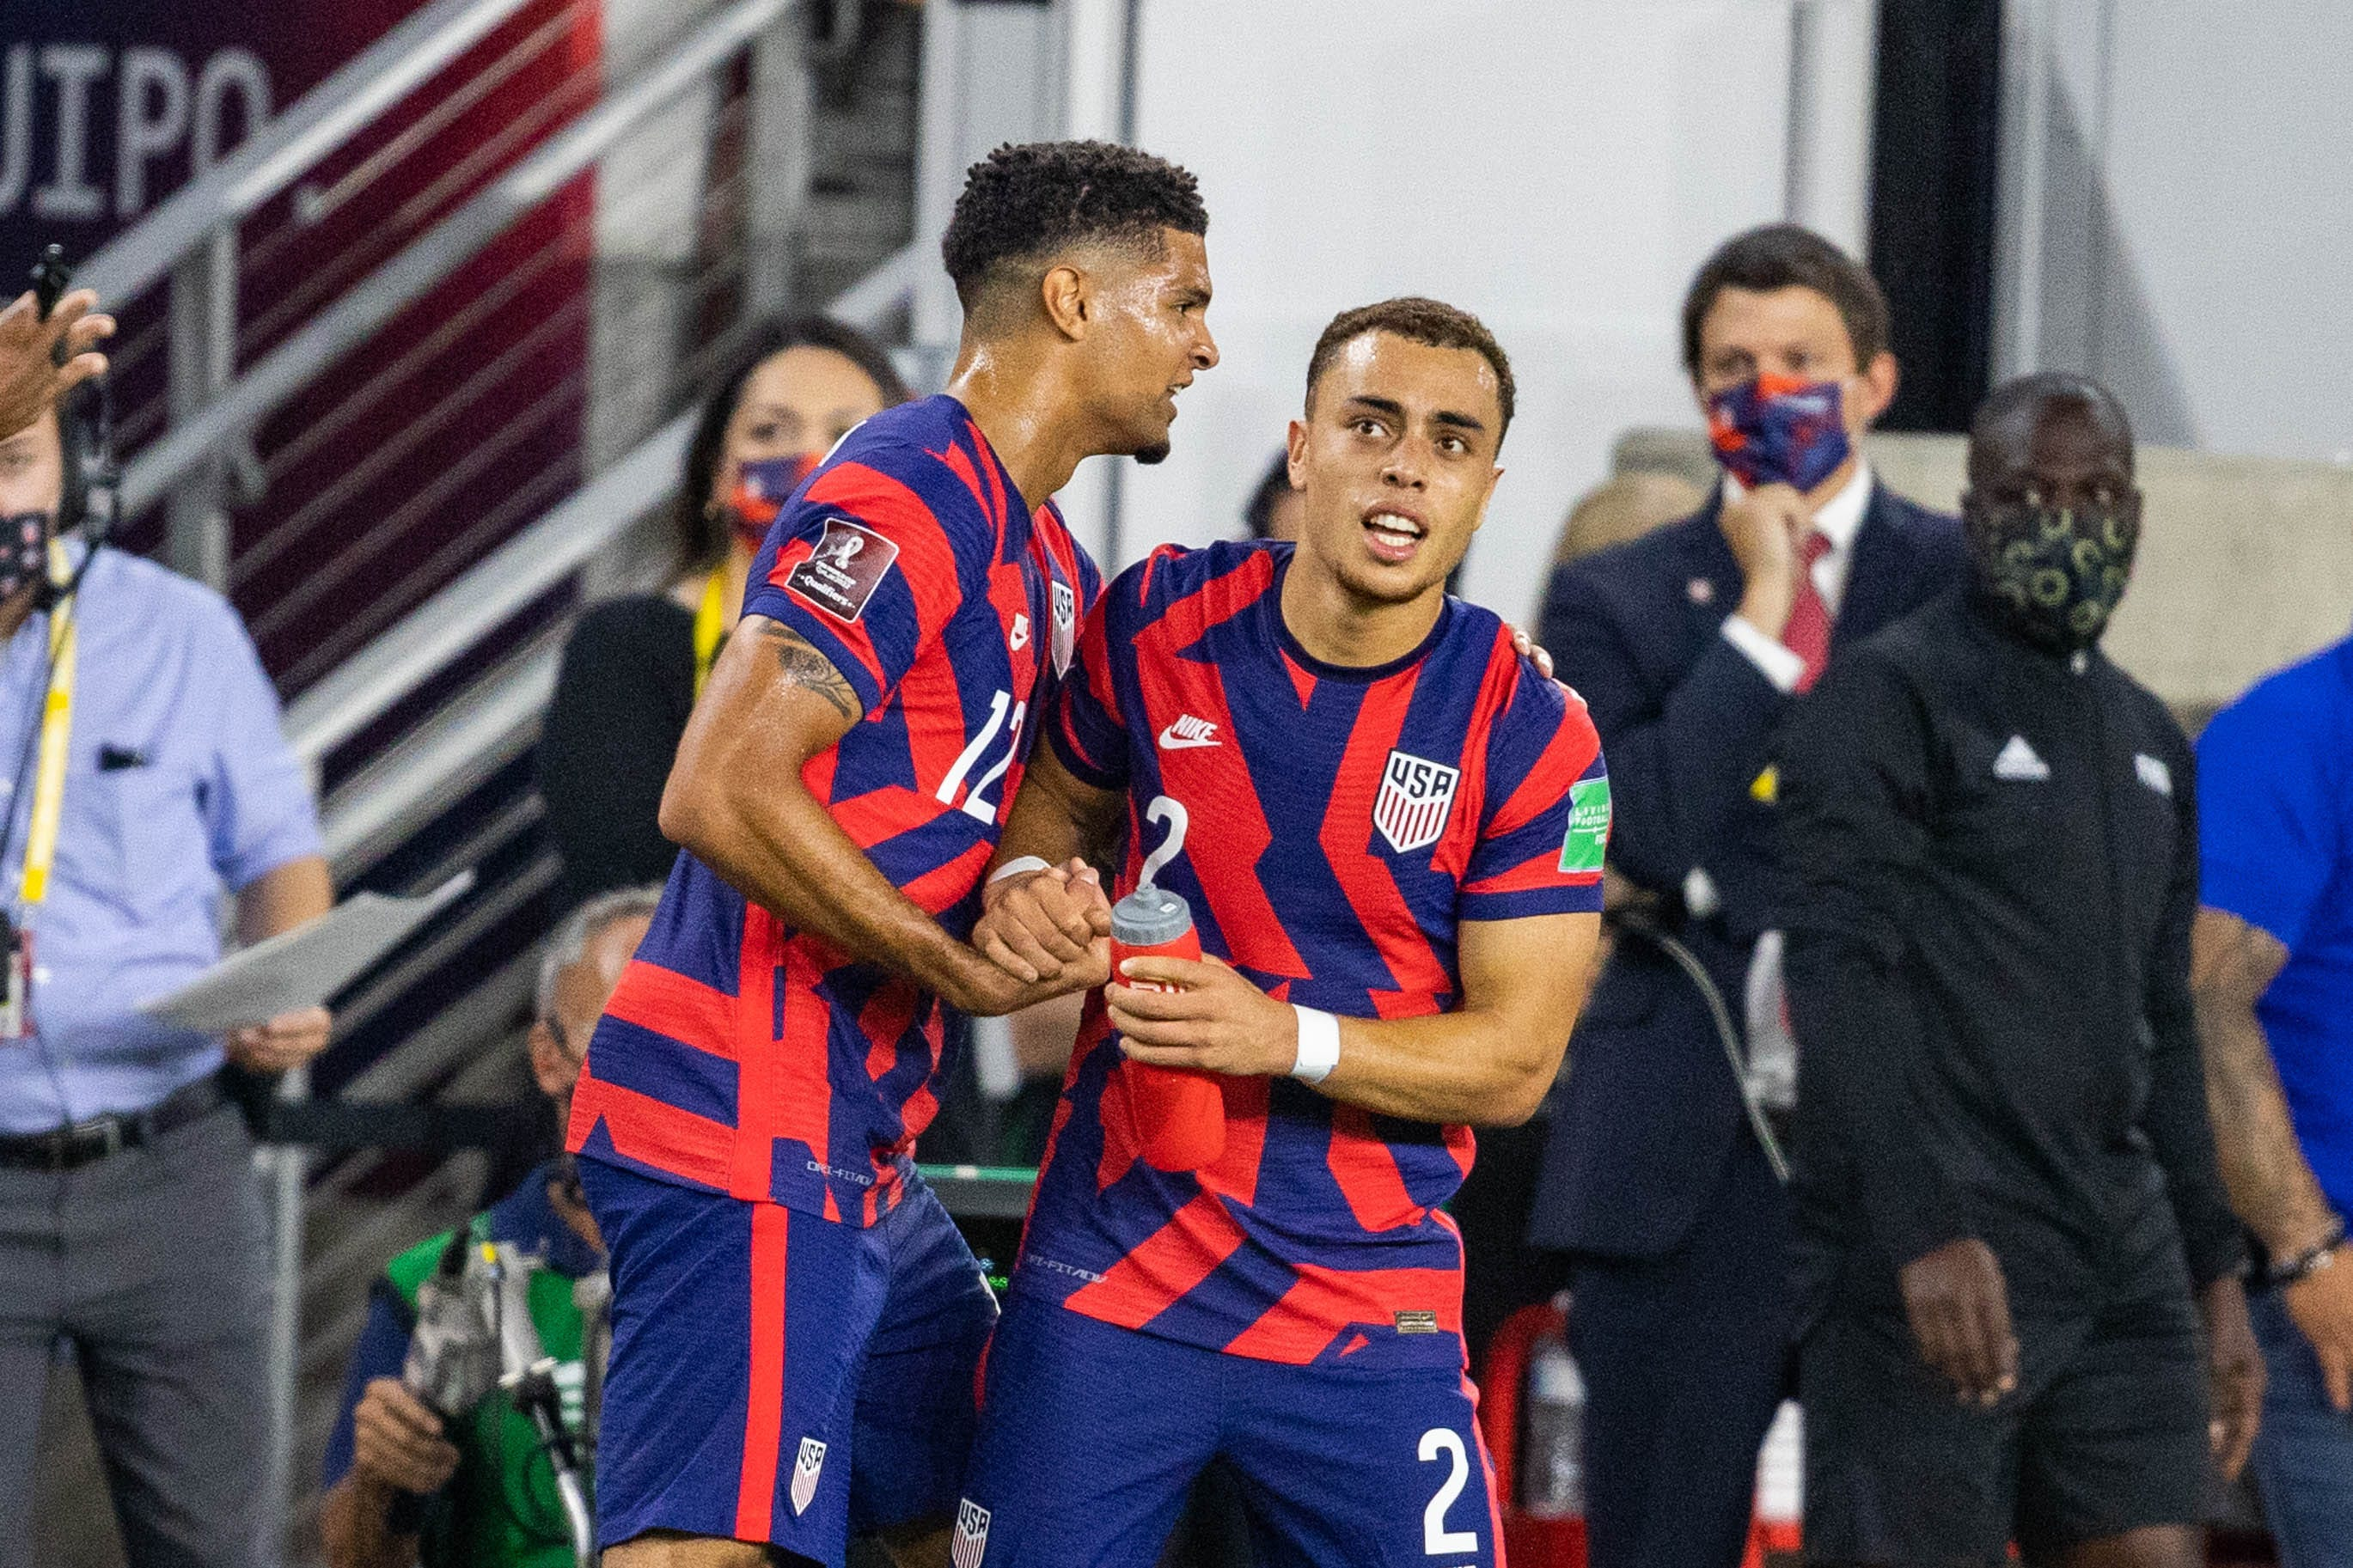 U.S. men s national soccer team erases early deficit, beats Costa Rica in World Cup qualifying